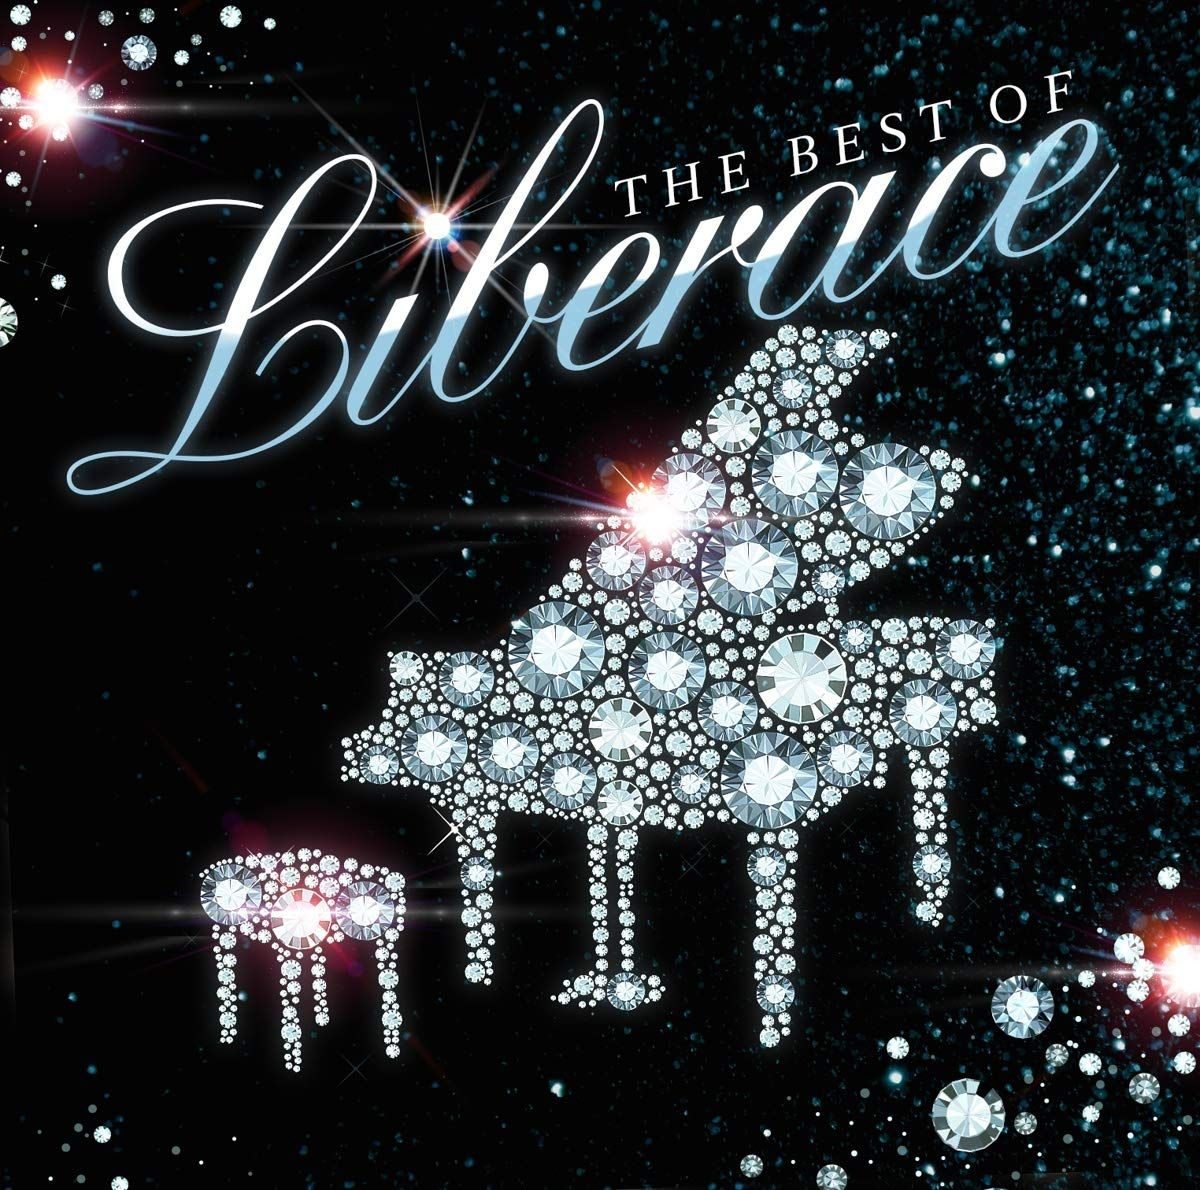 Liberace Liberace. The Best Of Liberace (2 CD) cd the corrs best of